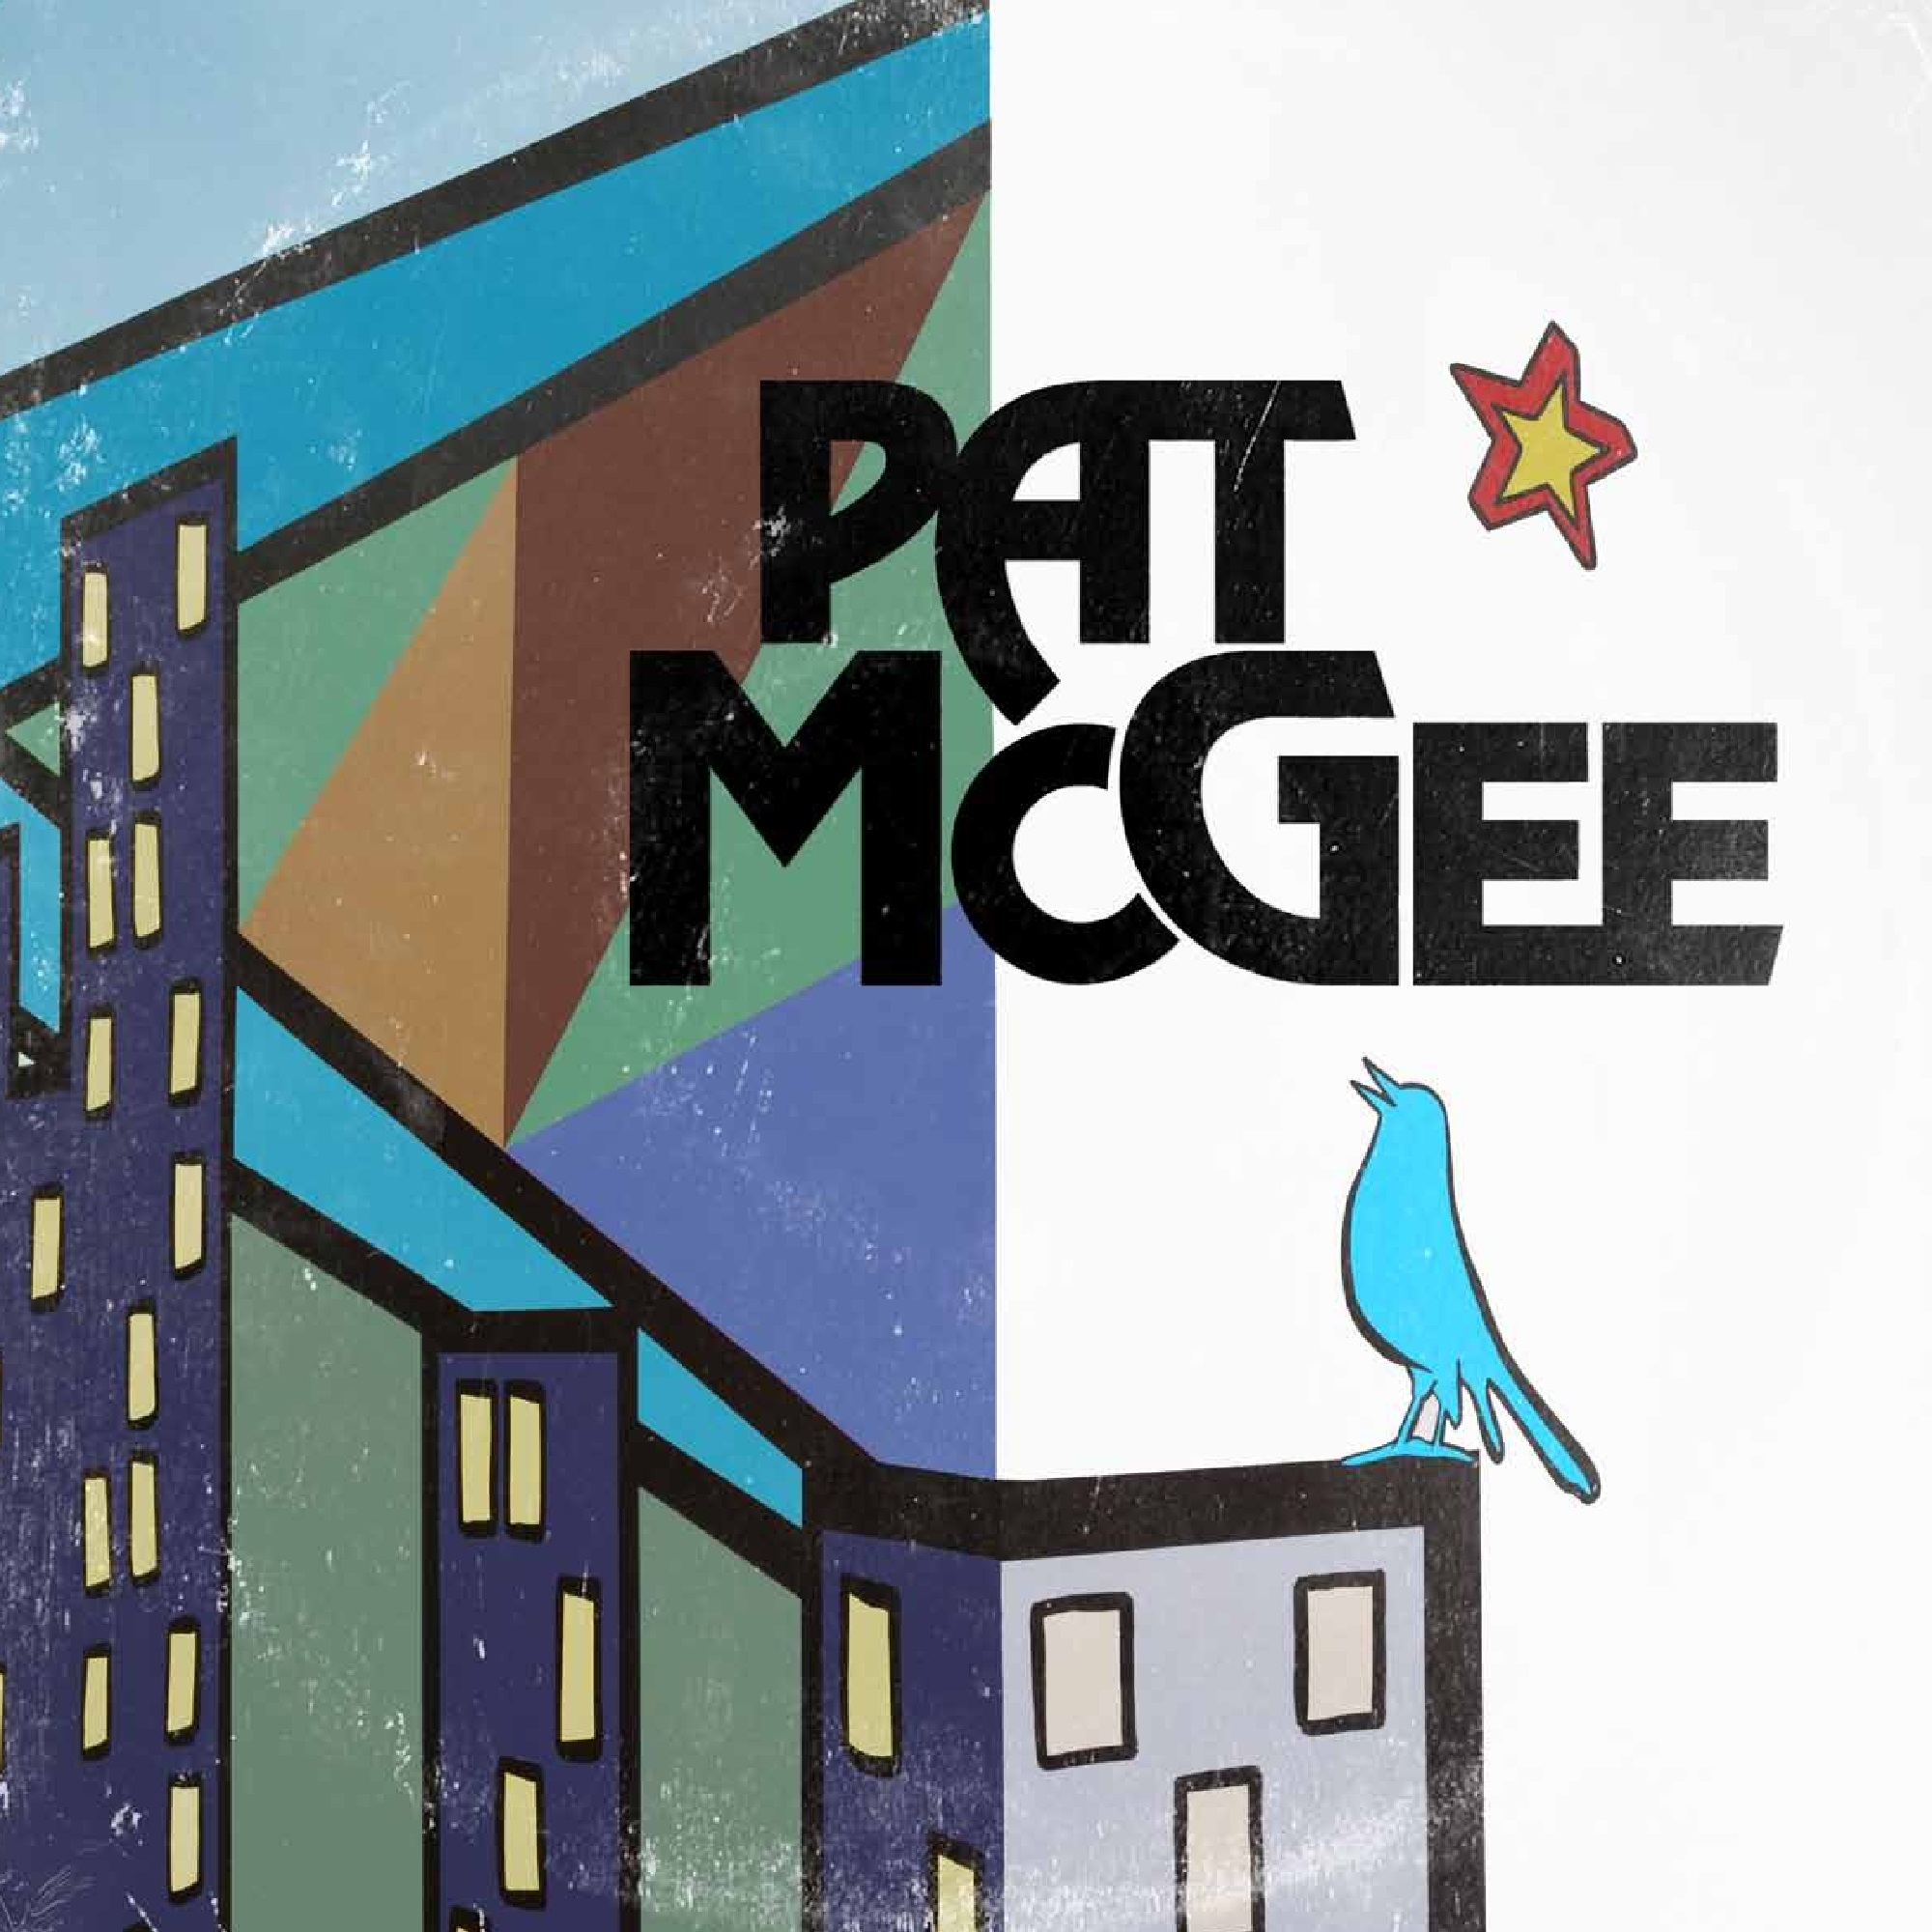 Shawn Brown's The Screaming Life: Pat McGee